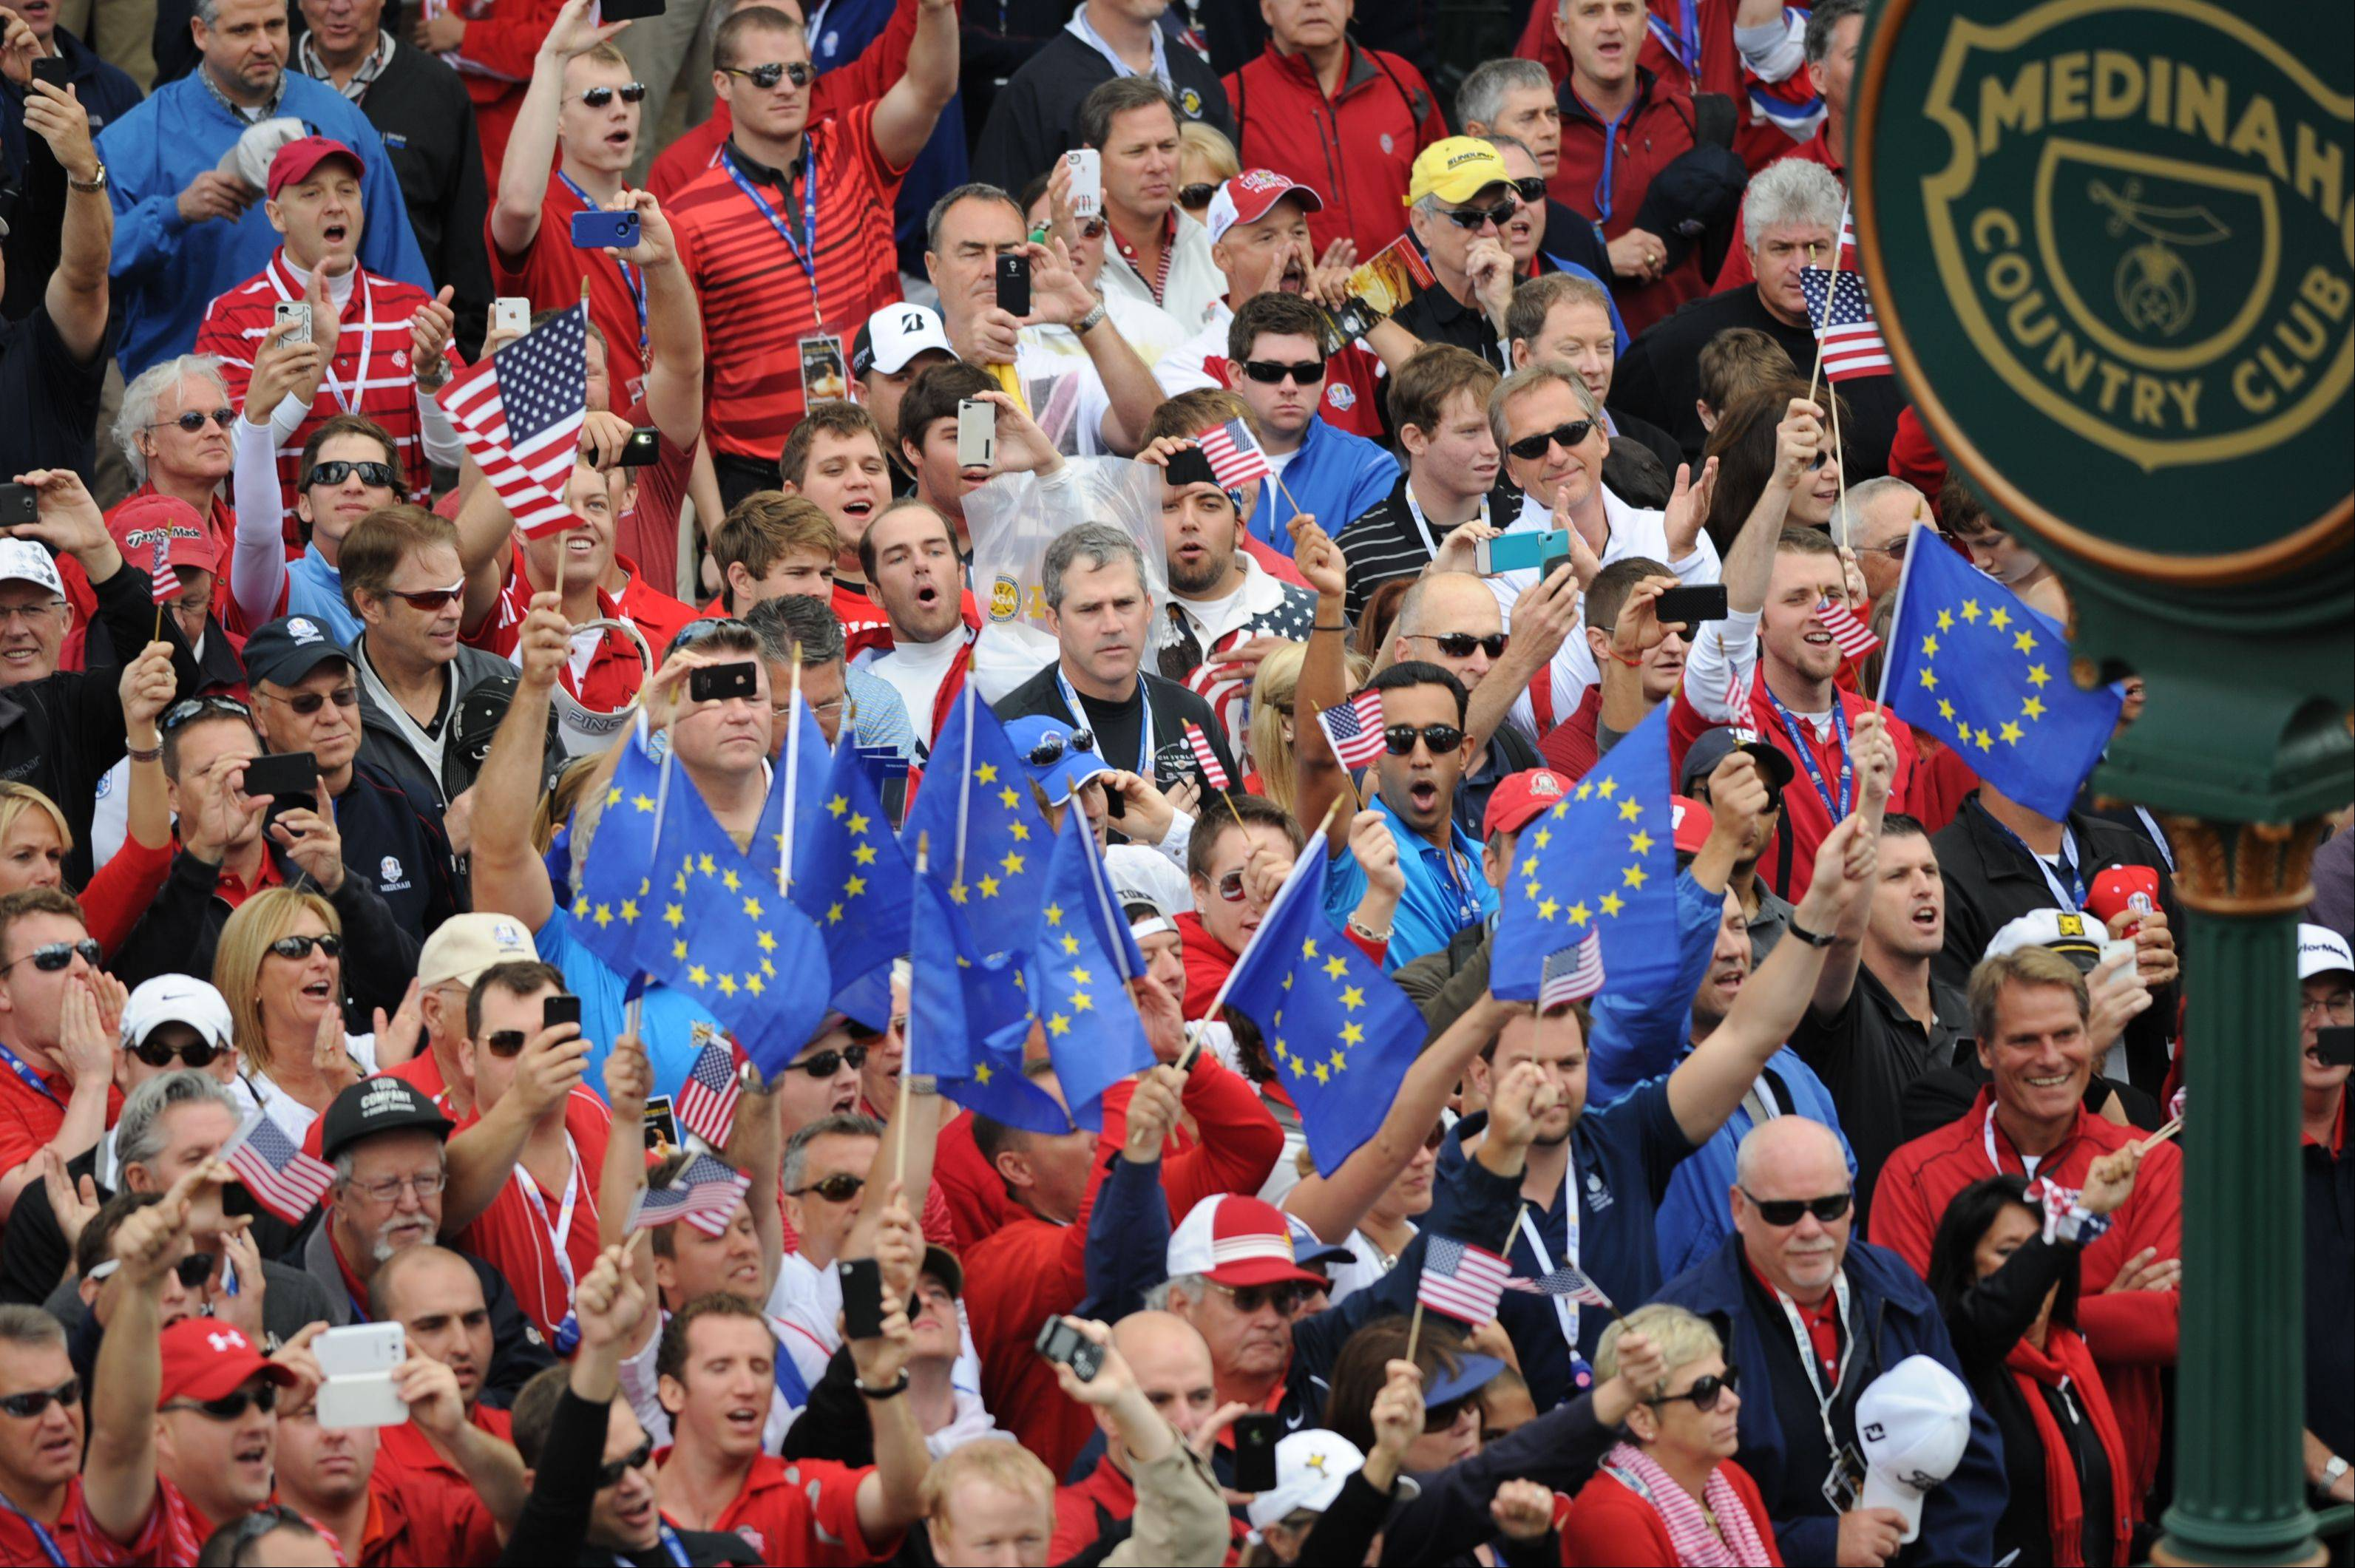 Fans for both the U.S. and European teams were out in force at the first tee Sunday during the final day of the 2012 Ryder Cup at Medinah Country Club.